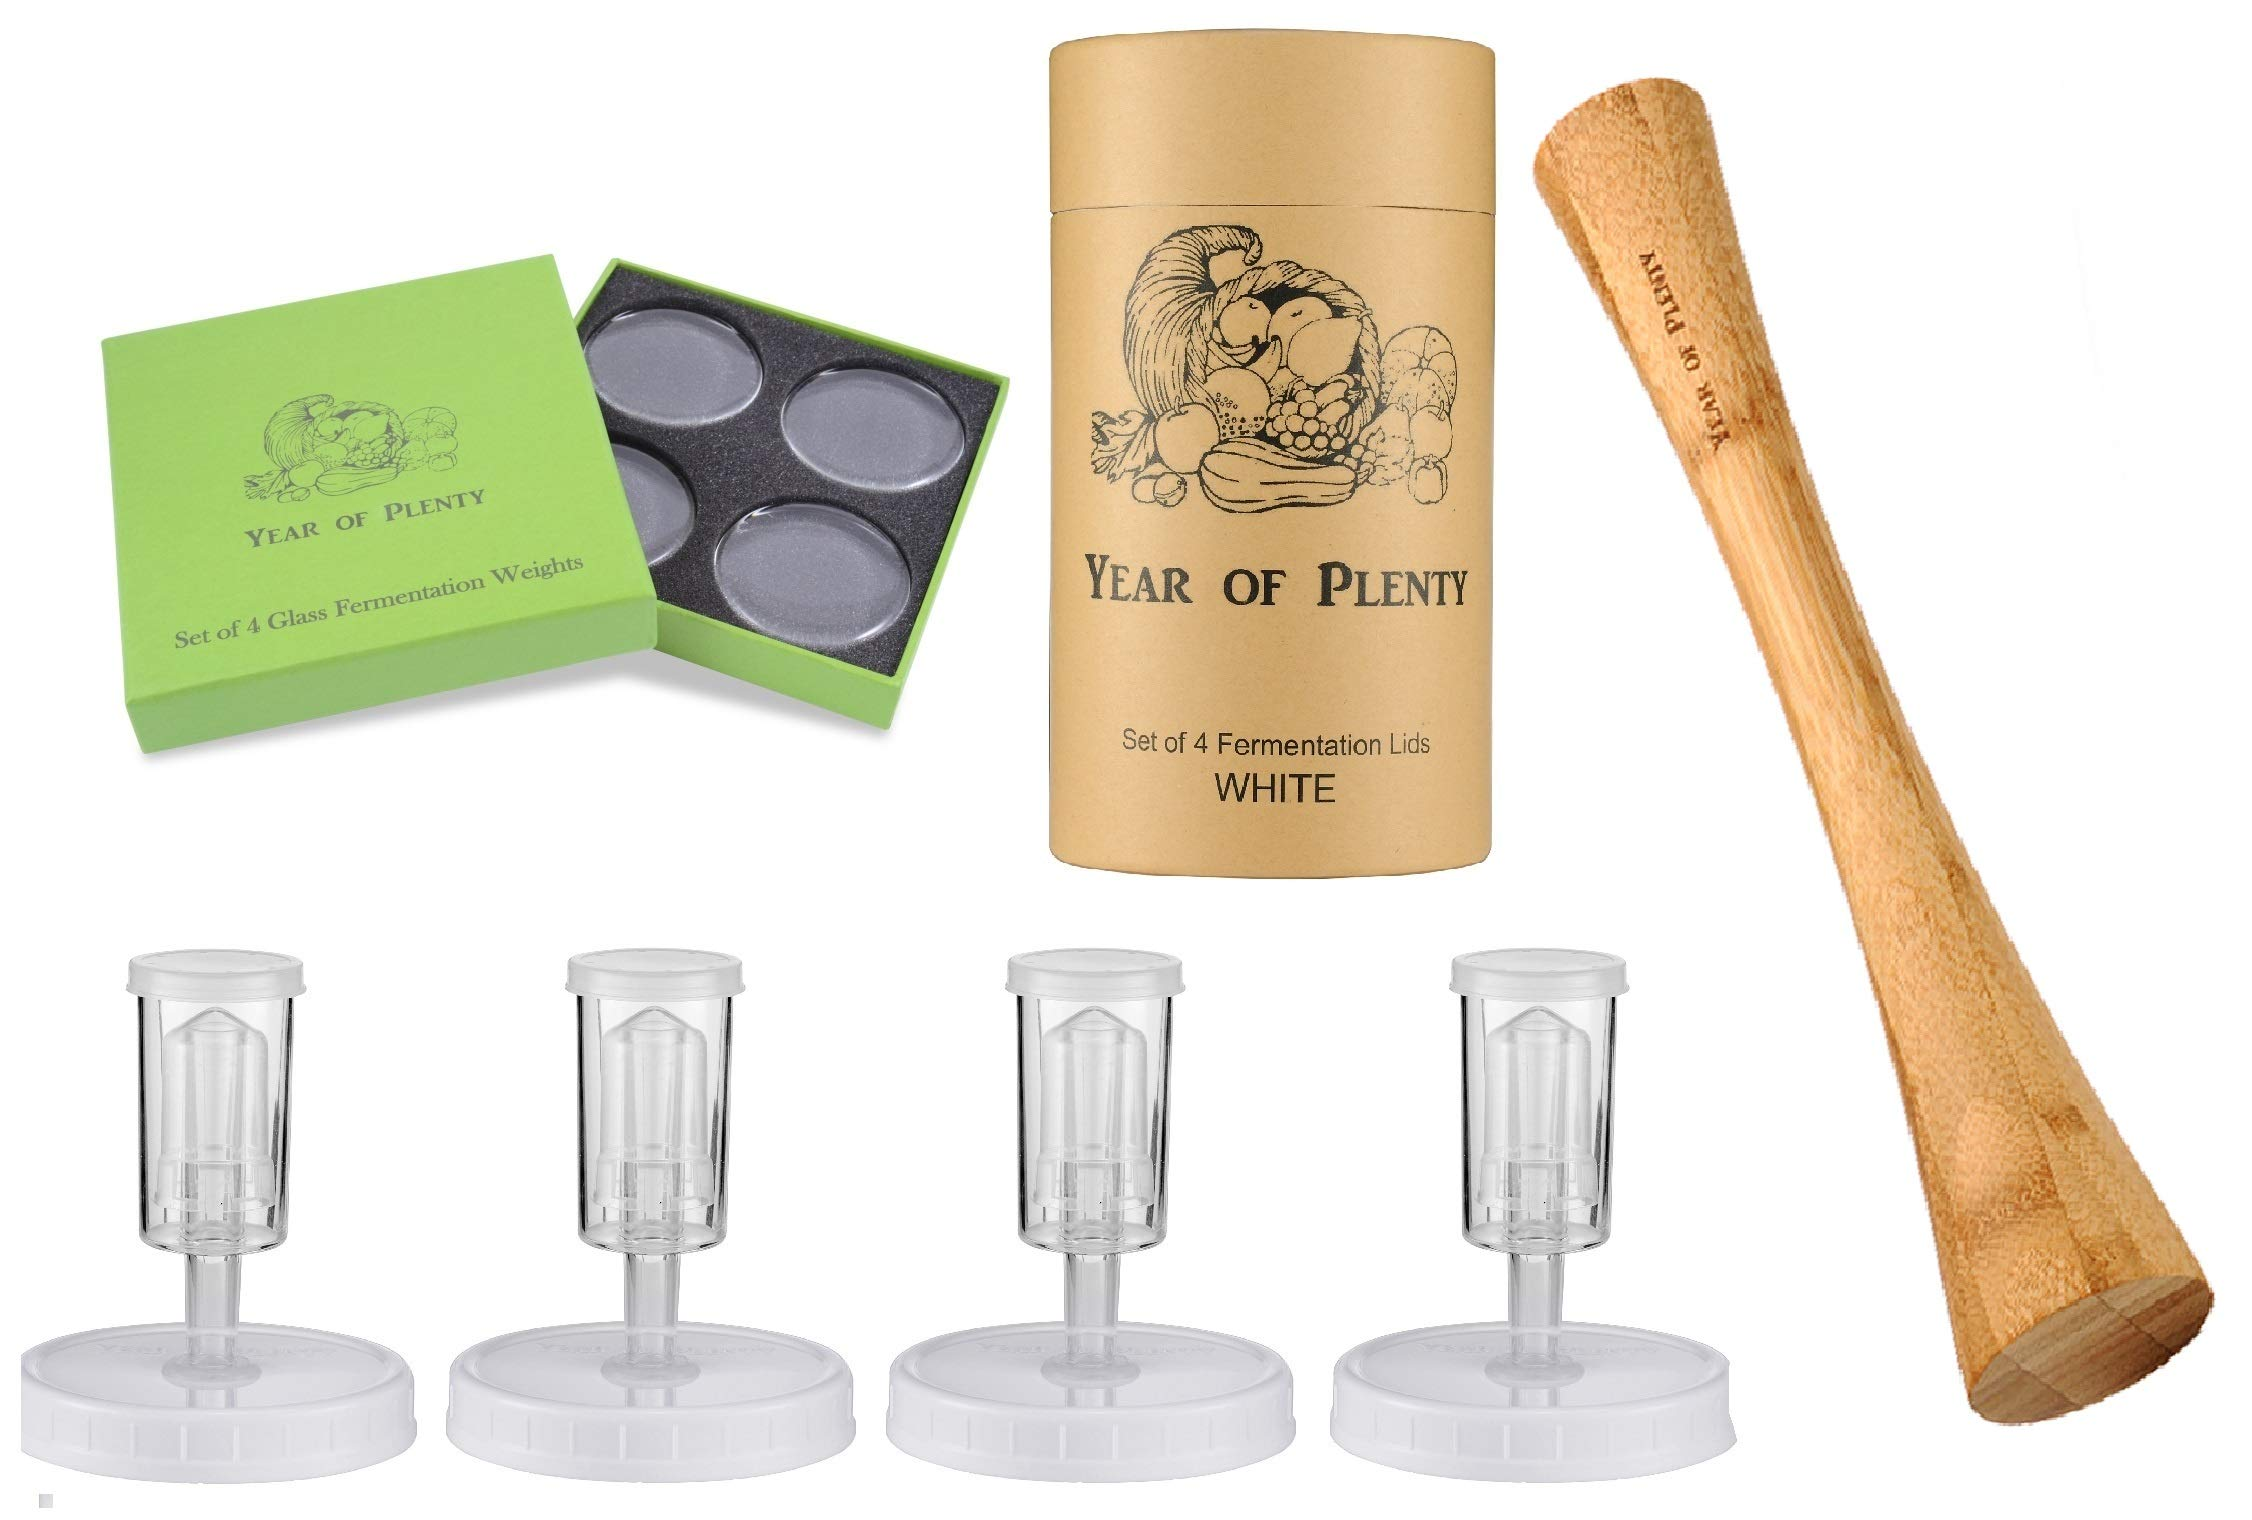 Year of Plenty Complete Fermenting Kit - Includes 4 White Fermentation Lids, 4 Fermentation Weights, one 12-inch Cabbage Bamboo Tamper (White)